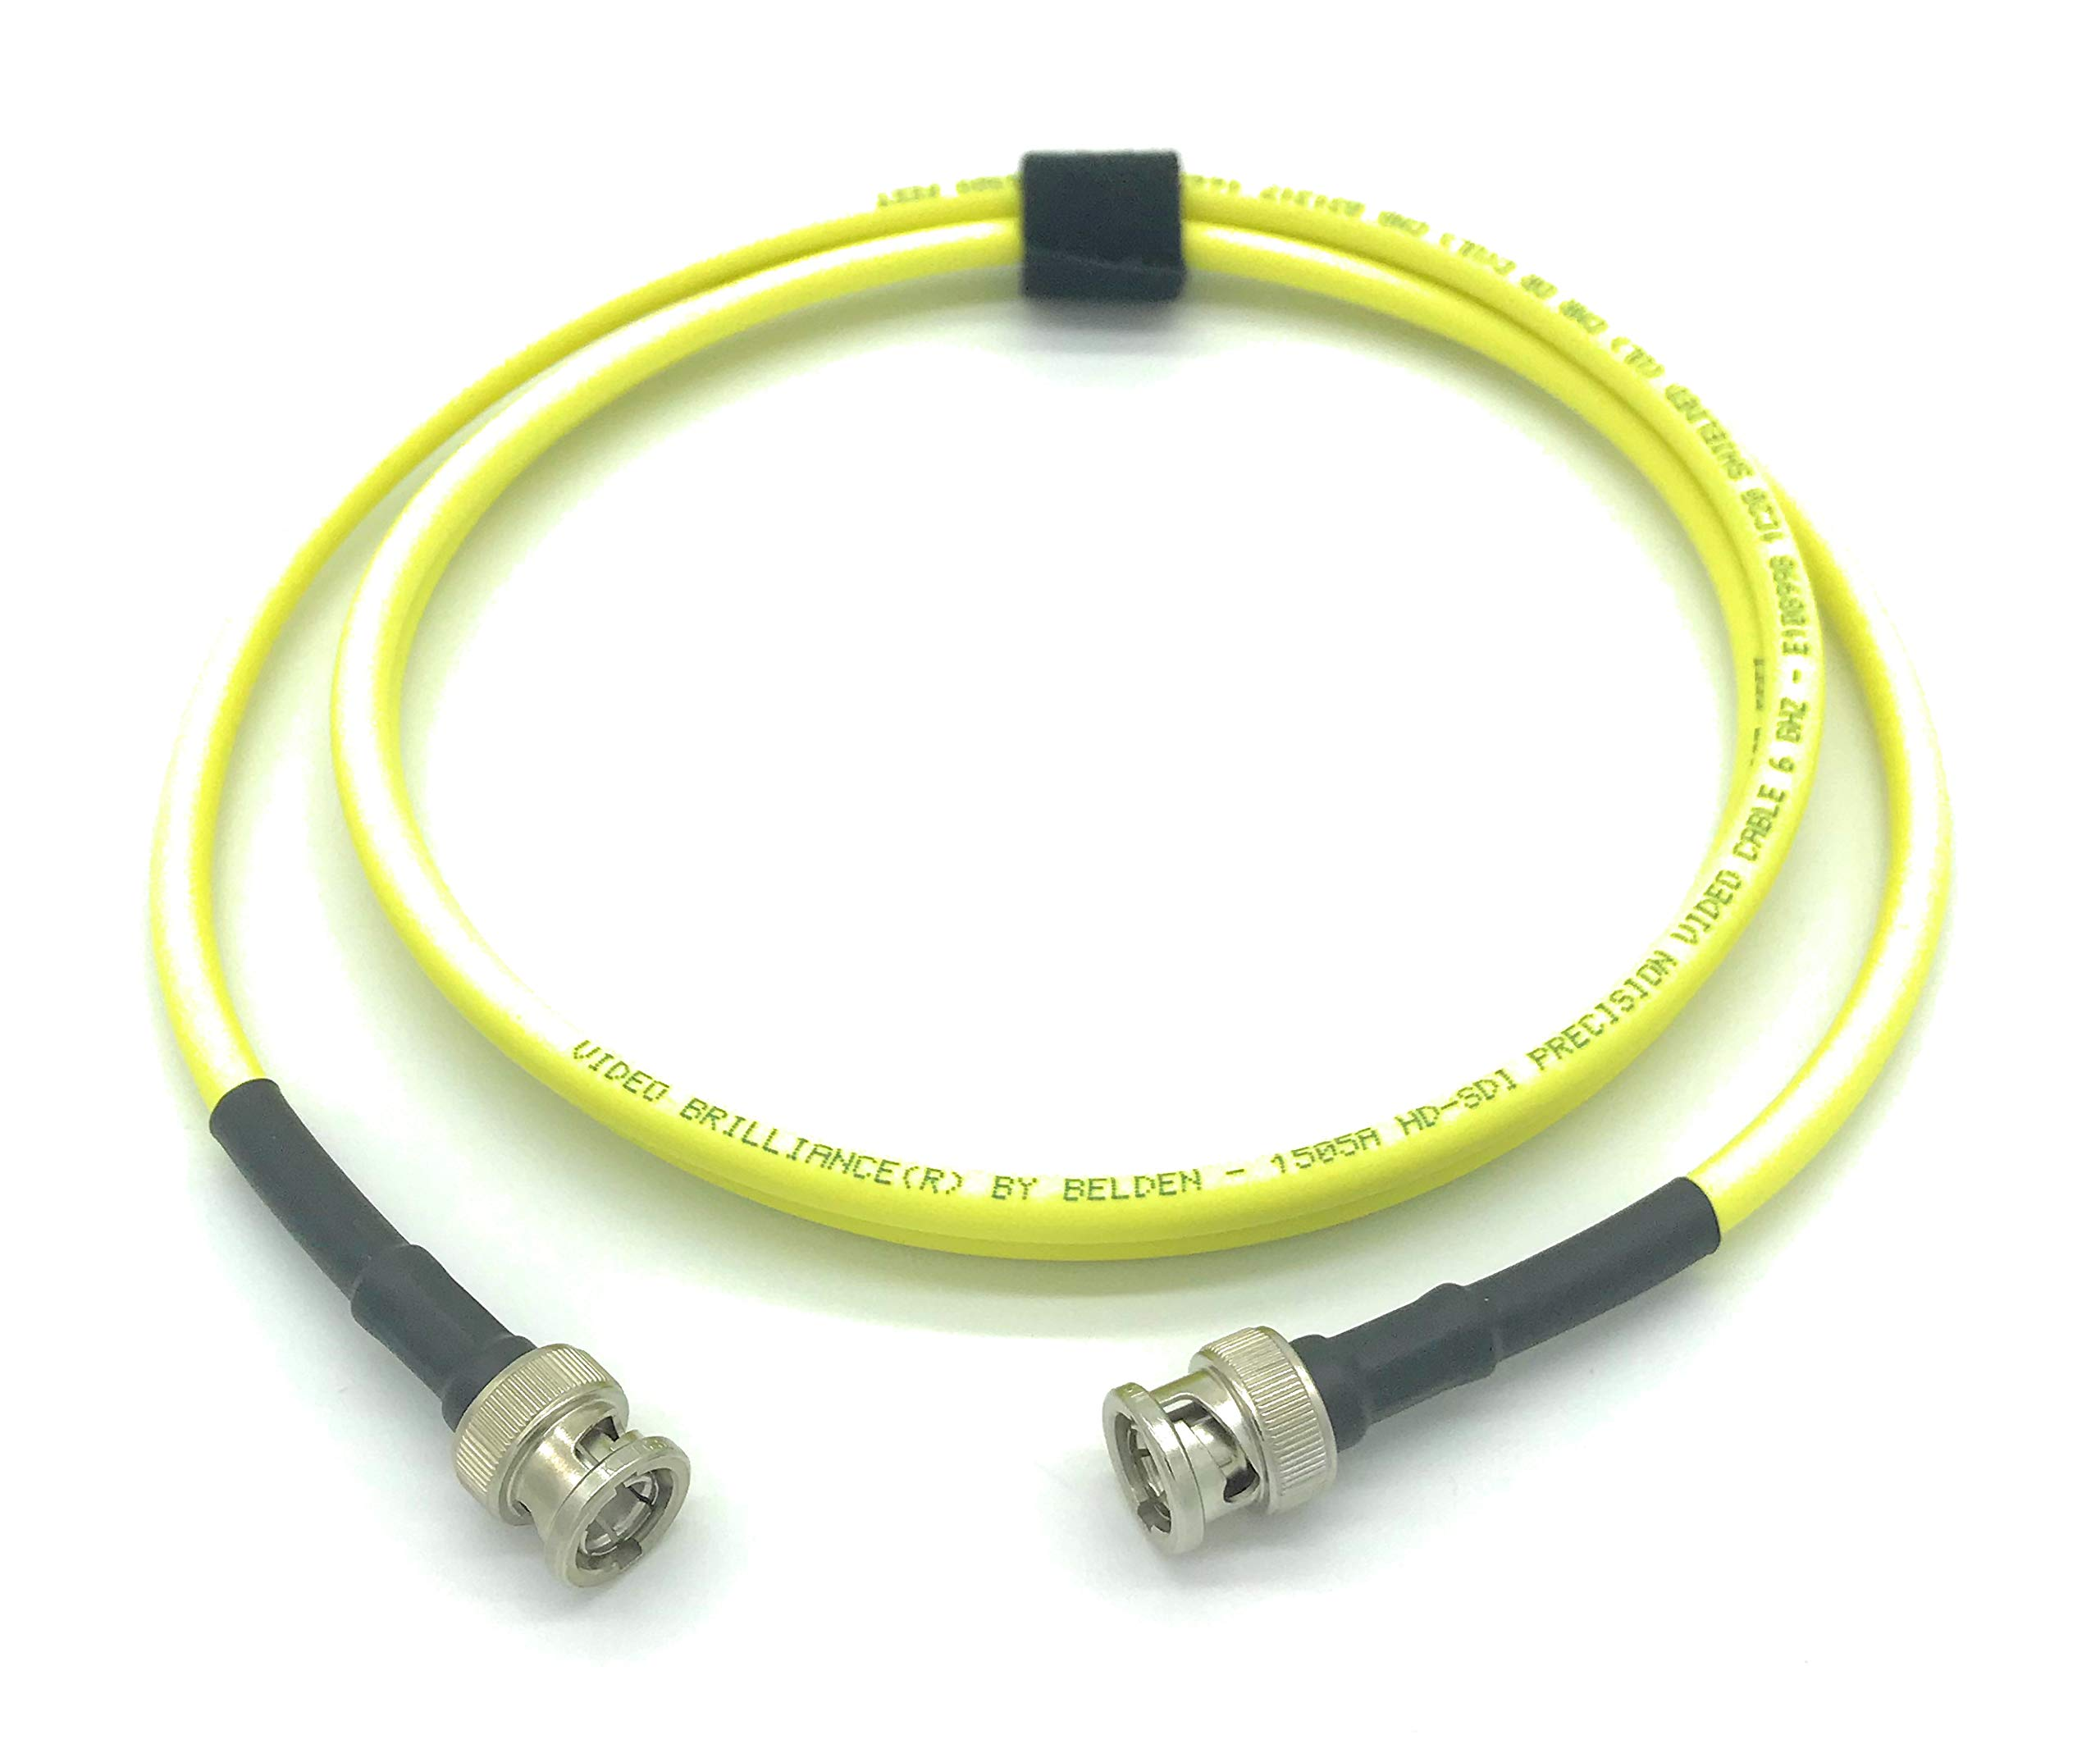 300ft AV-Cables 3G/6G HD SDI BNC Cable Belden 1505A RG59 - Yellow (300ft)